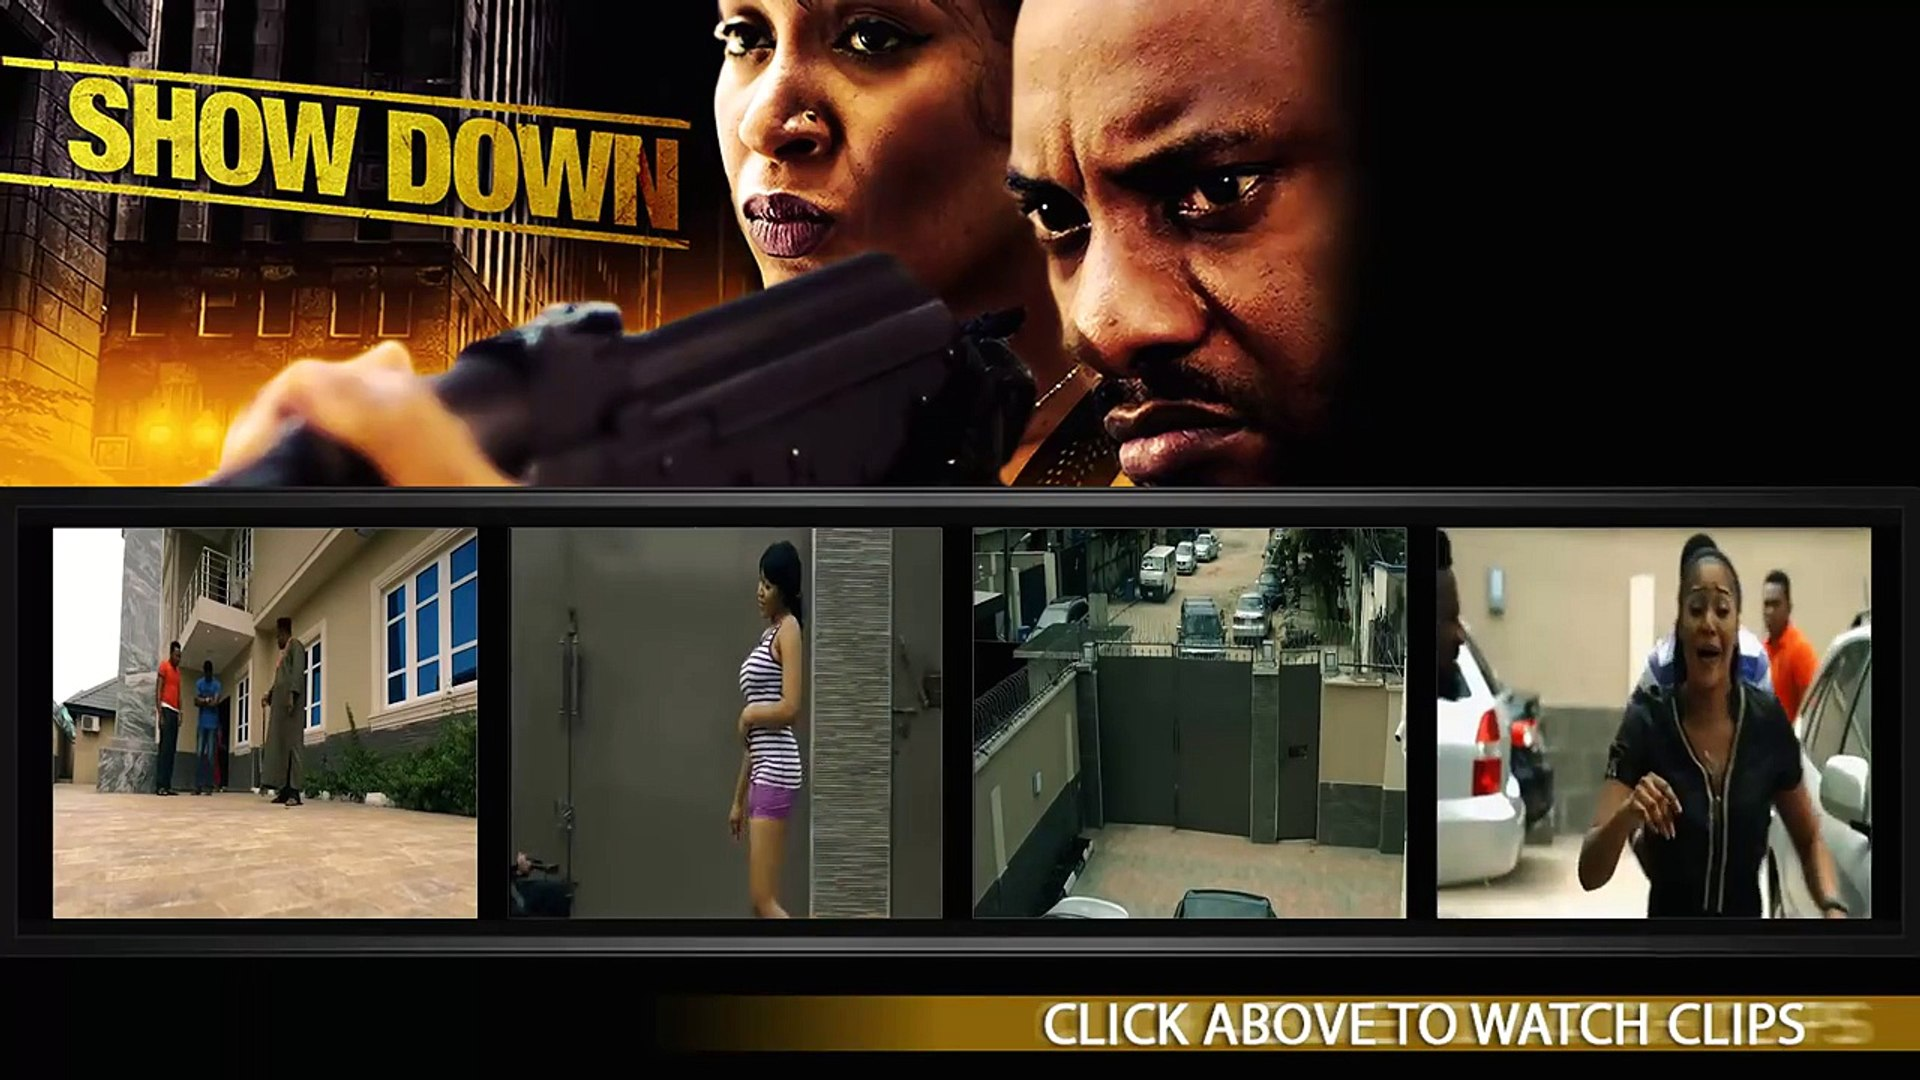 Show Down [Official Trailer] Latest 2016 Nigerian Nollywood Drama Movie